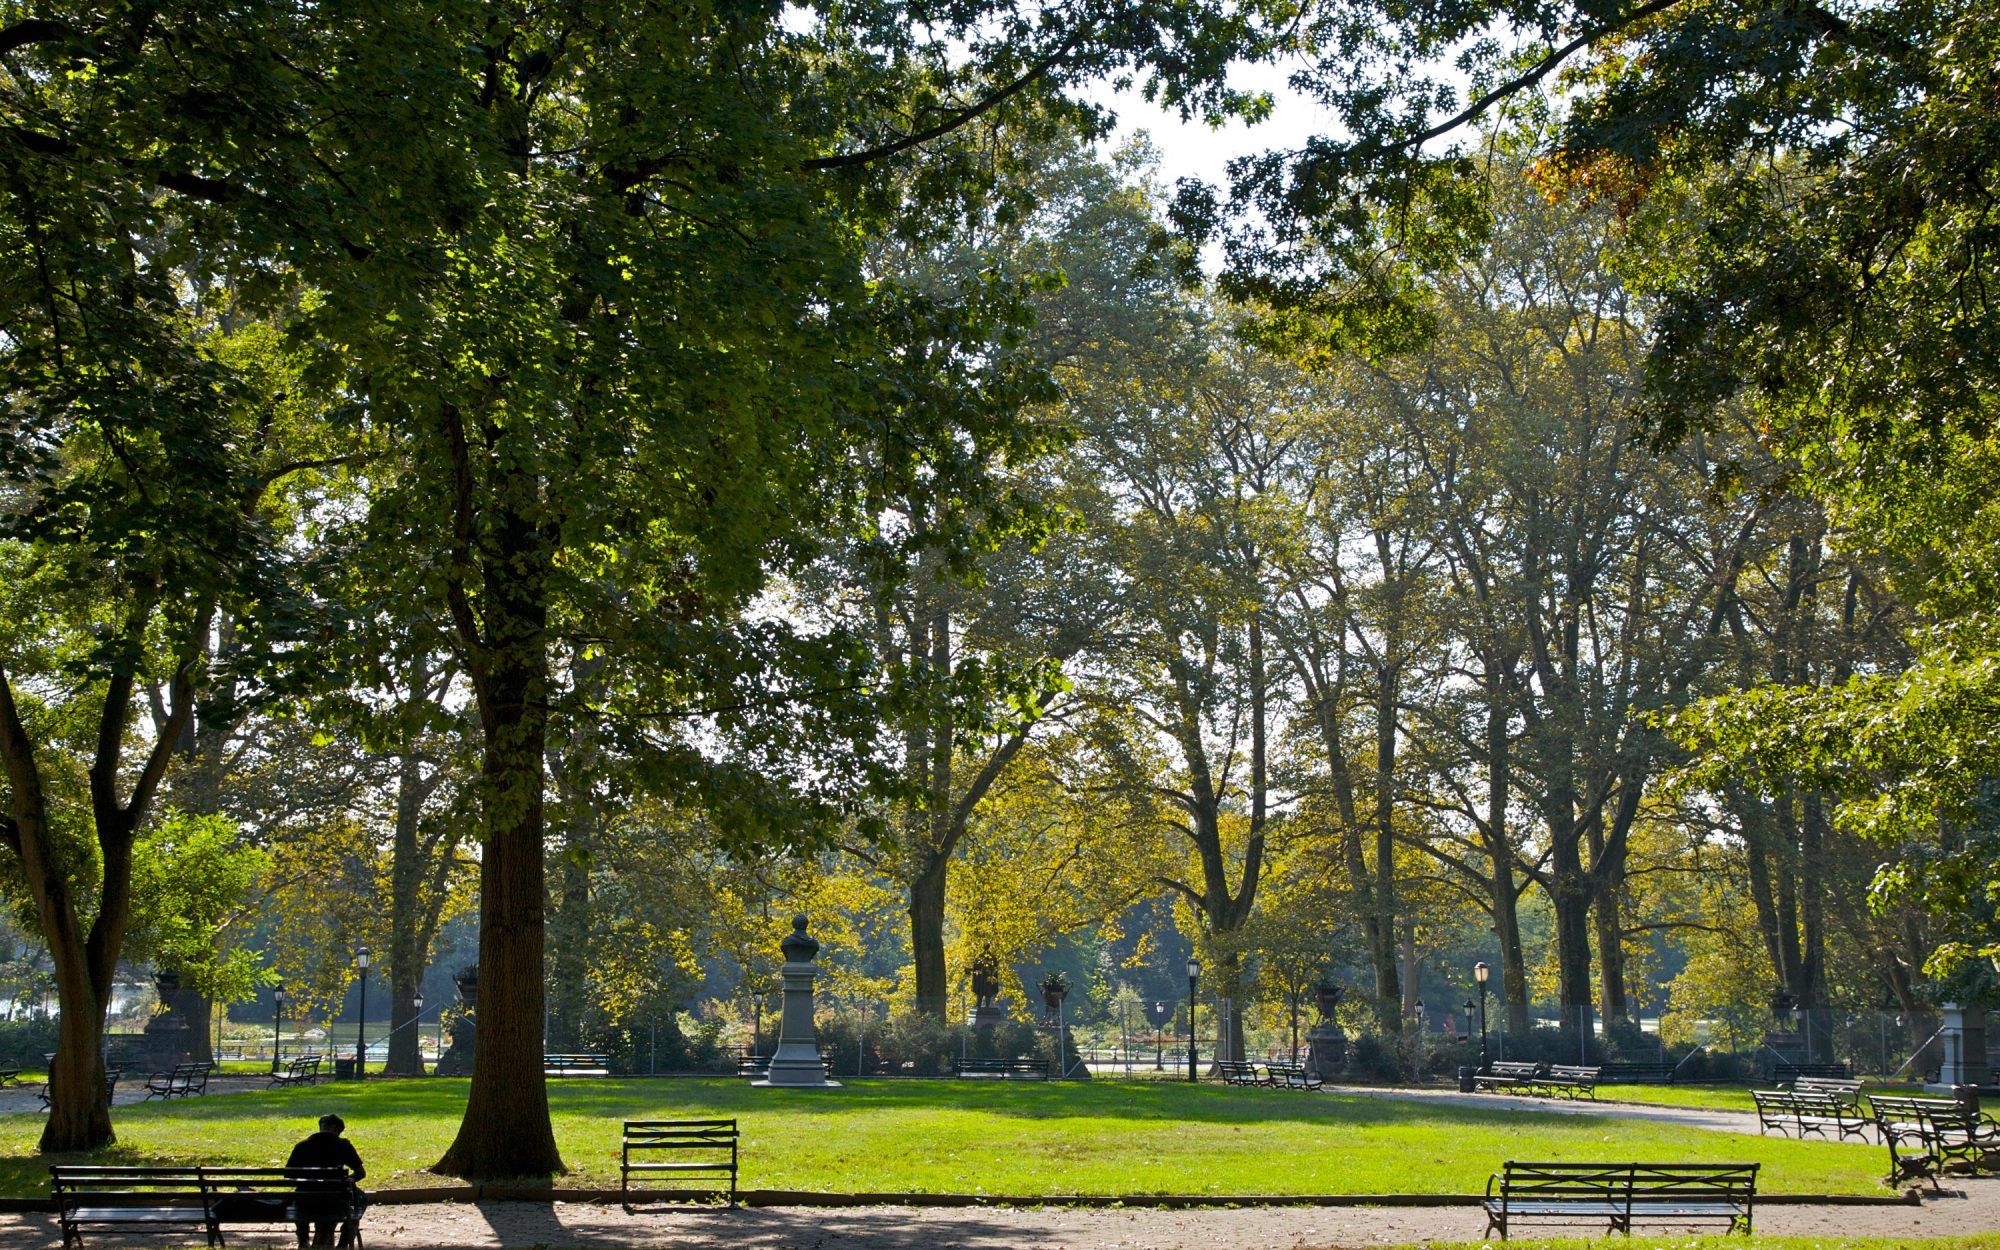 8 Things to Do at Prospect Park